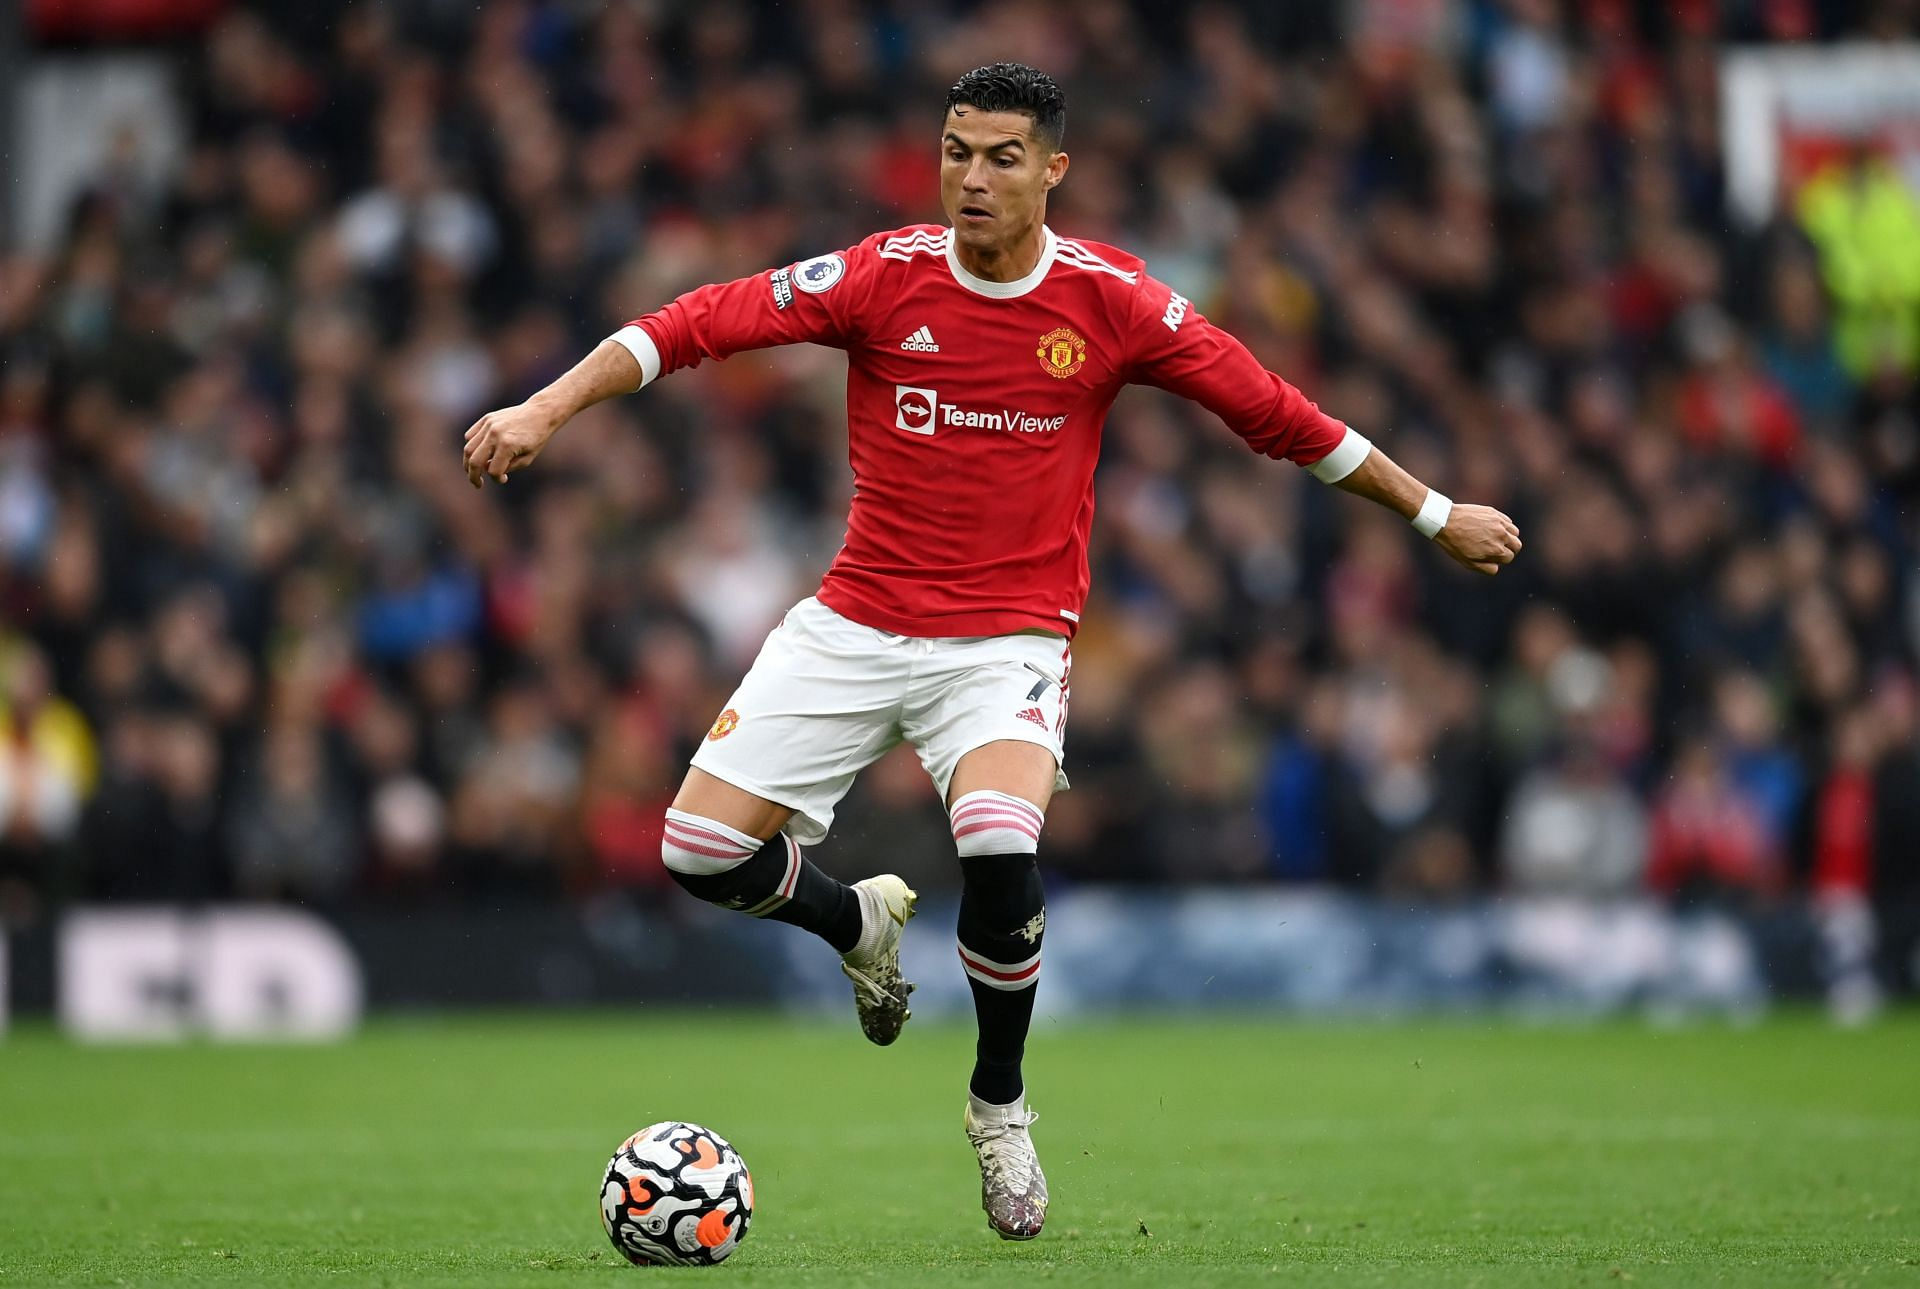 Manchester United take on Leicester City this weekend